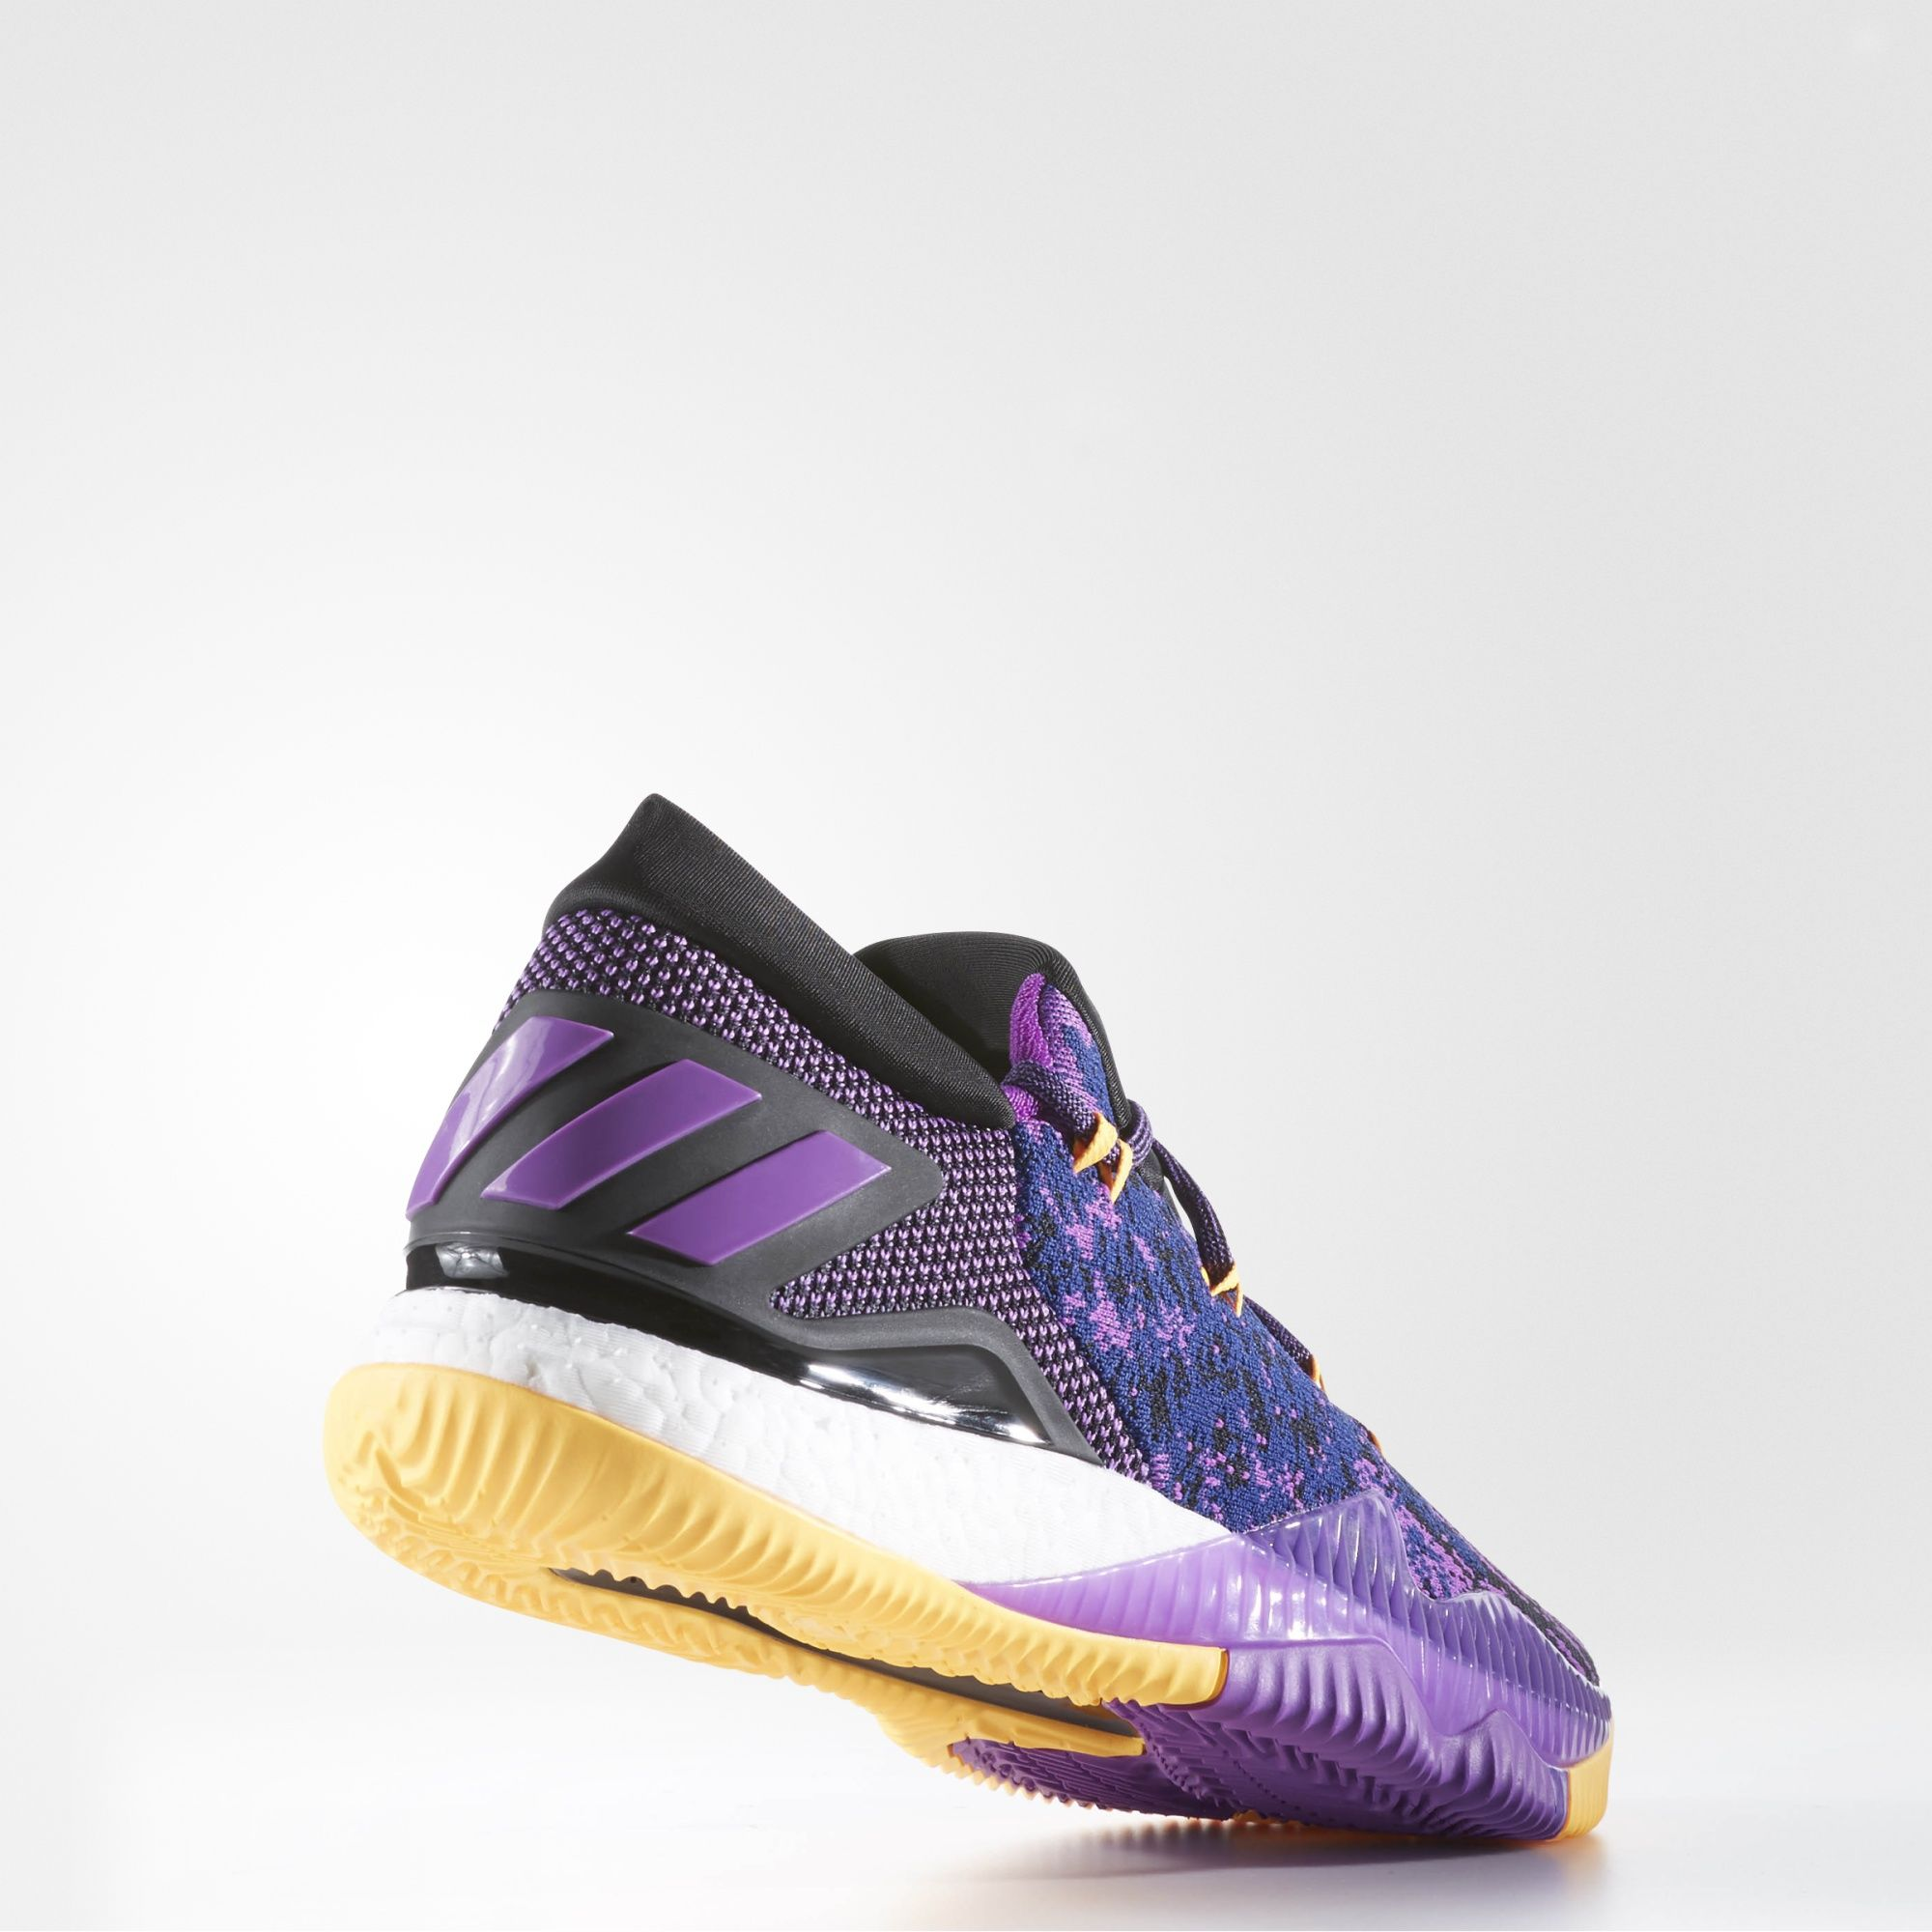 size 40 7cc4d c02c3 adidas Crazy Light Boost 2016 Primeknit Swaggy P - Heel Angle · adidas    Kicks On Court ...